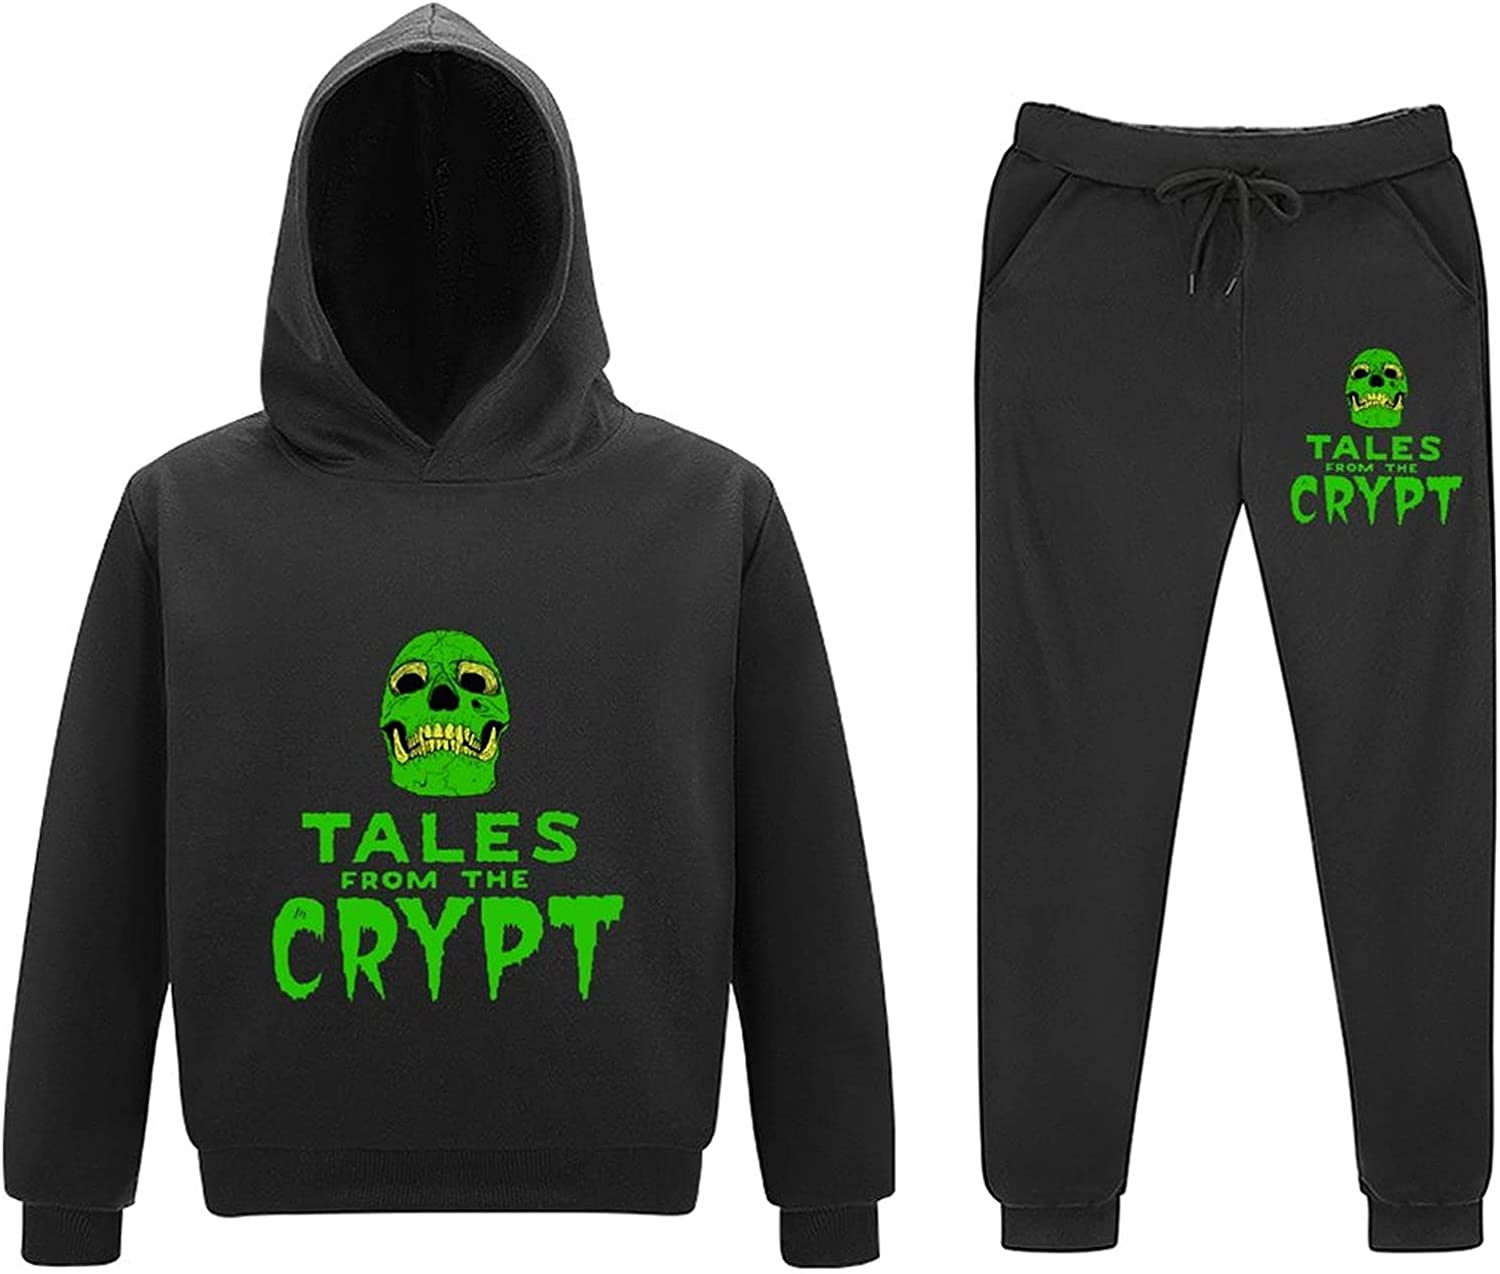 5-11Y Tal-es from The Crypt Little Boy Girls Sweatsuits 2 Piece Outfits Toddler Tee Kids Pants Set Child Pullover